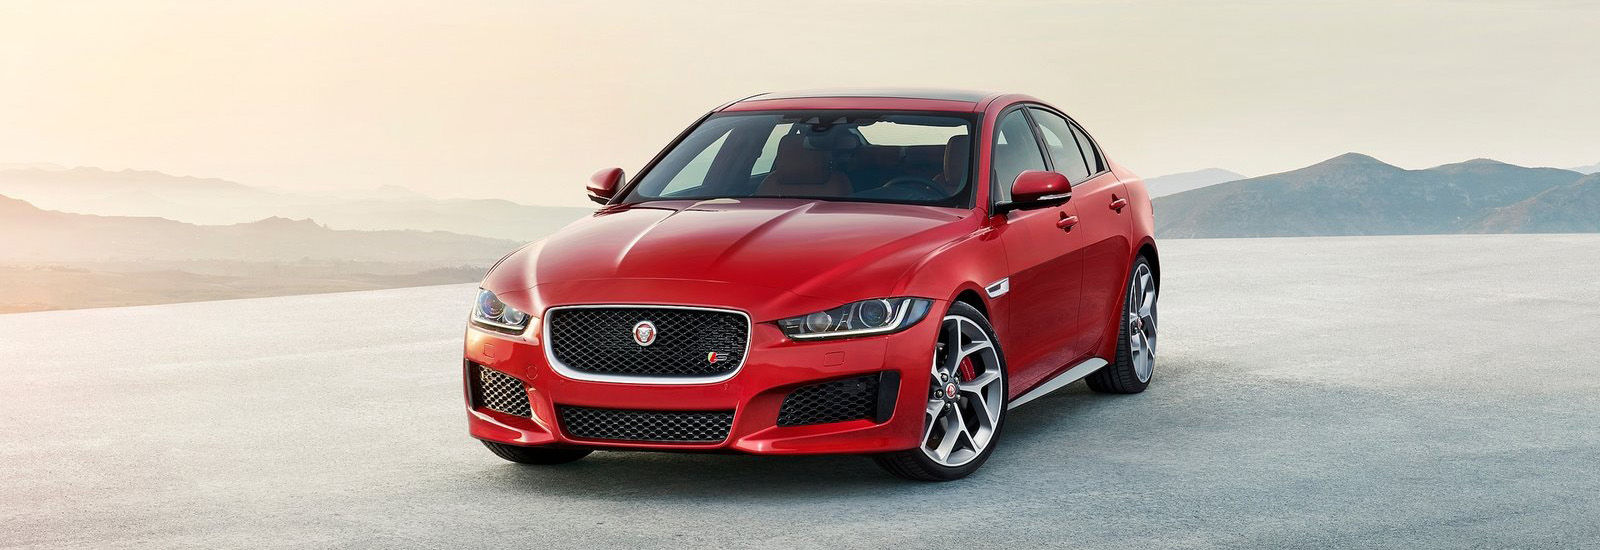 Jaguar Xe Uk Release Date >> Jaguar XE SVR price, specs and release date | carwow